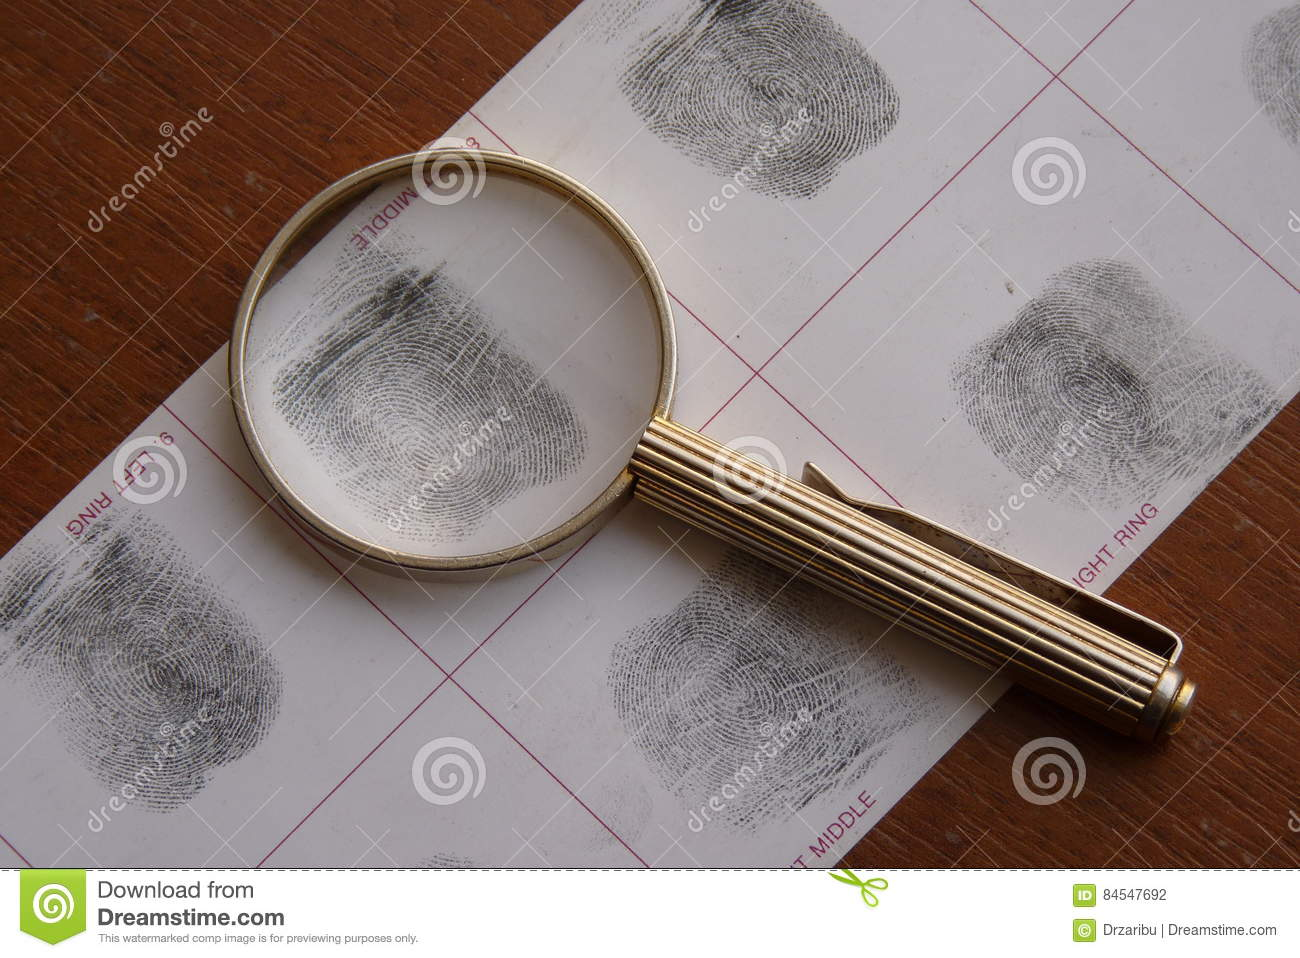 fingerprints-examination-checking-looking-evidence-84547692